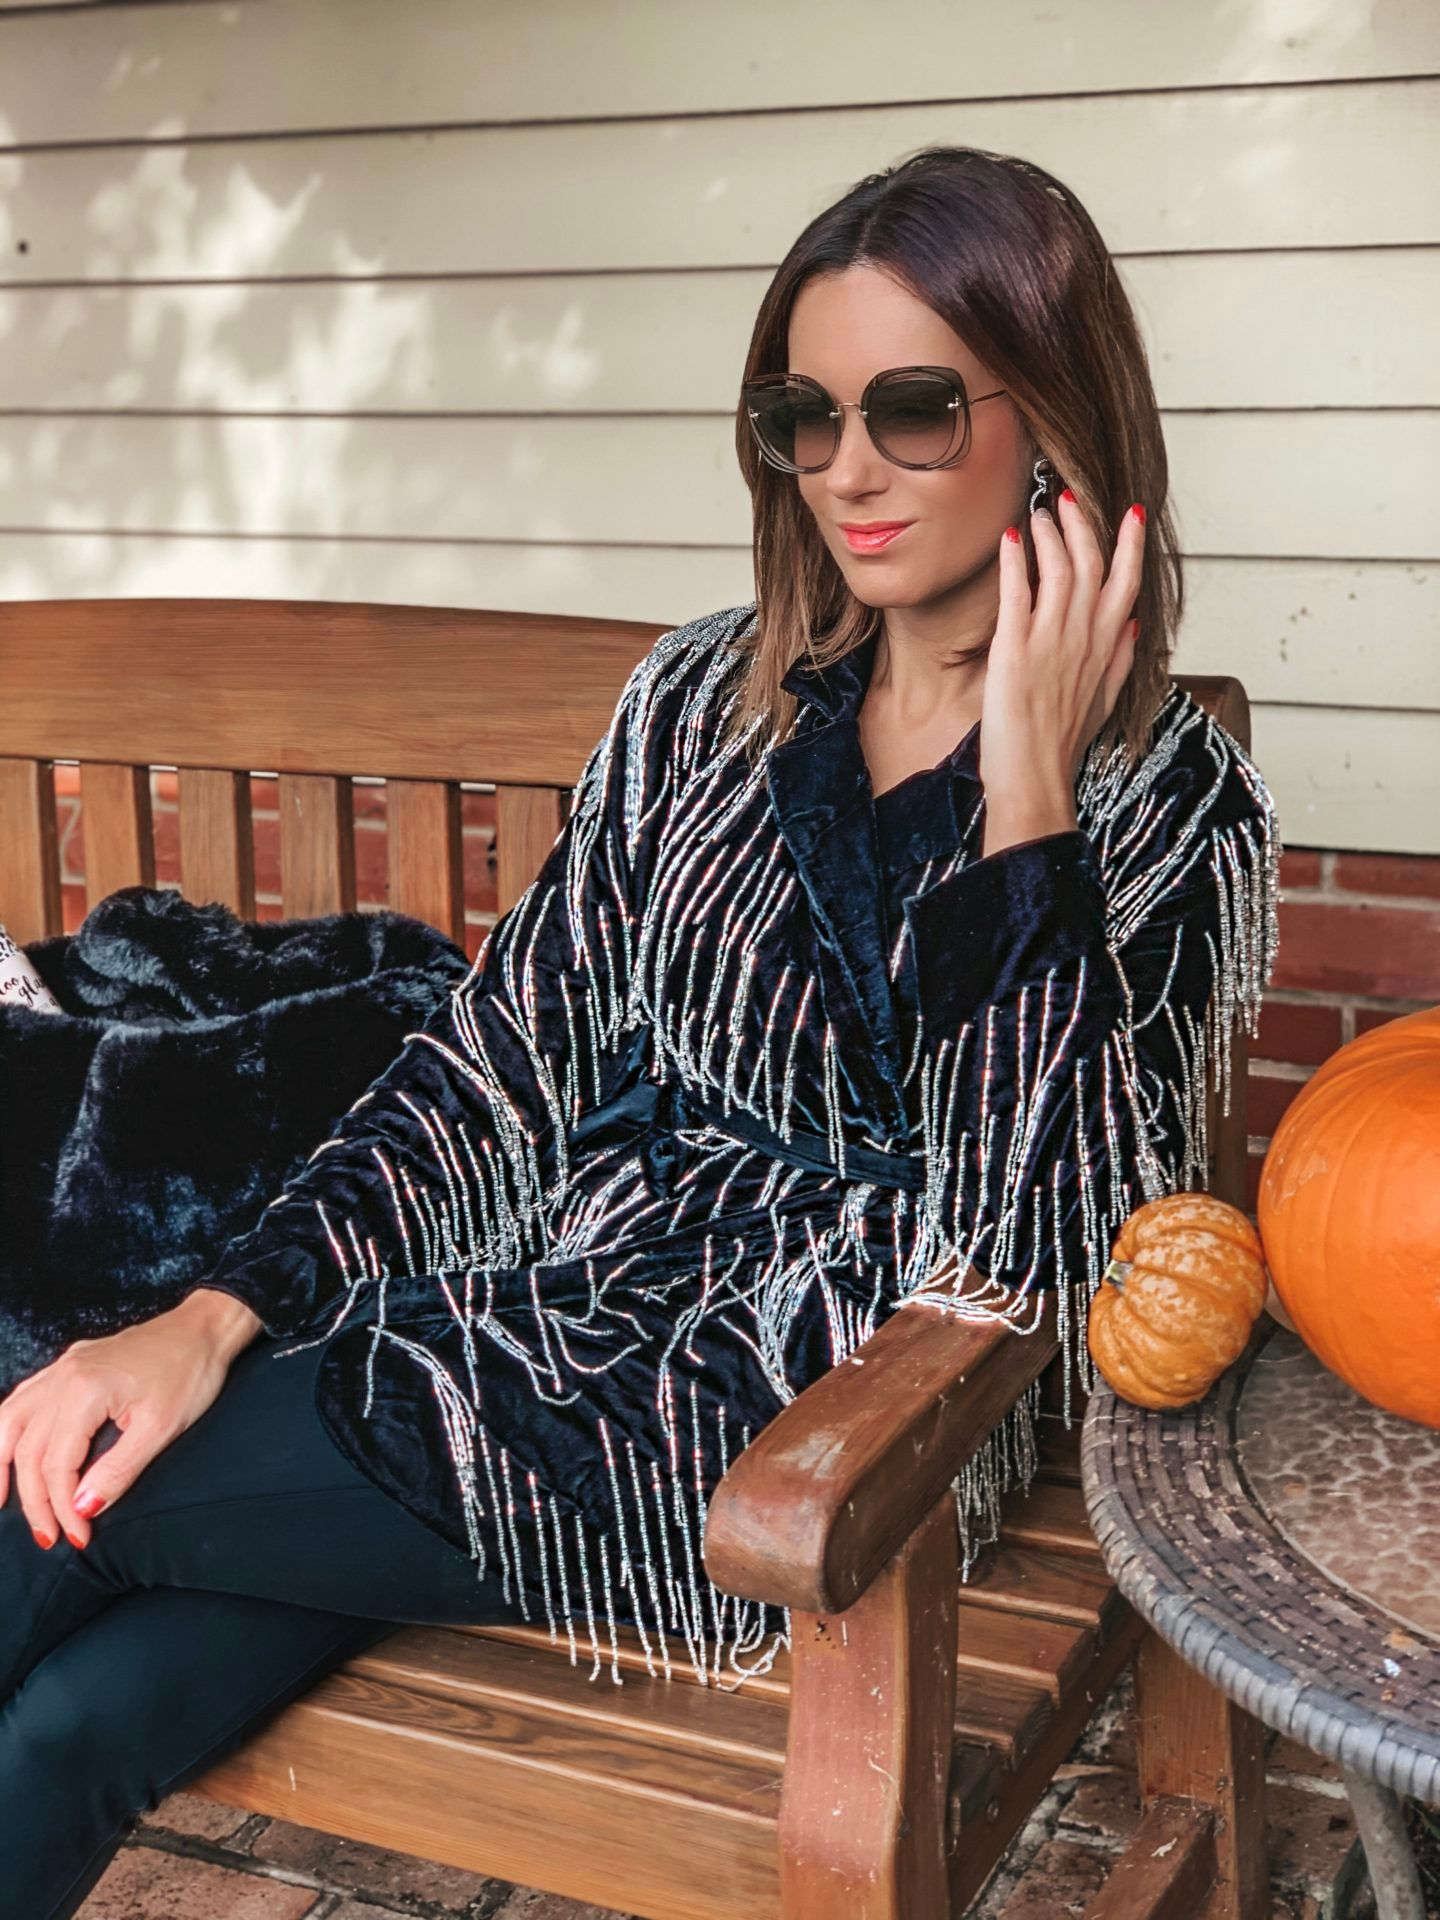 A/W19 Fashion trends Sparkles, fringe and sequins, oversized bags